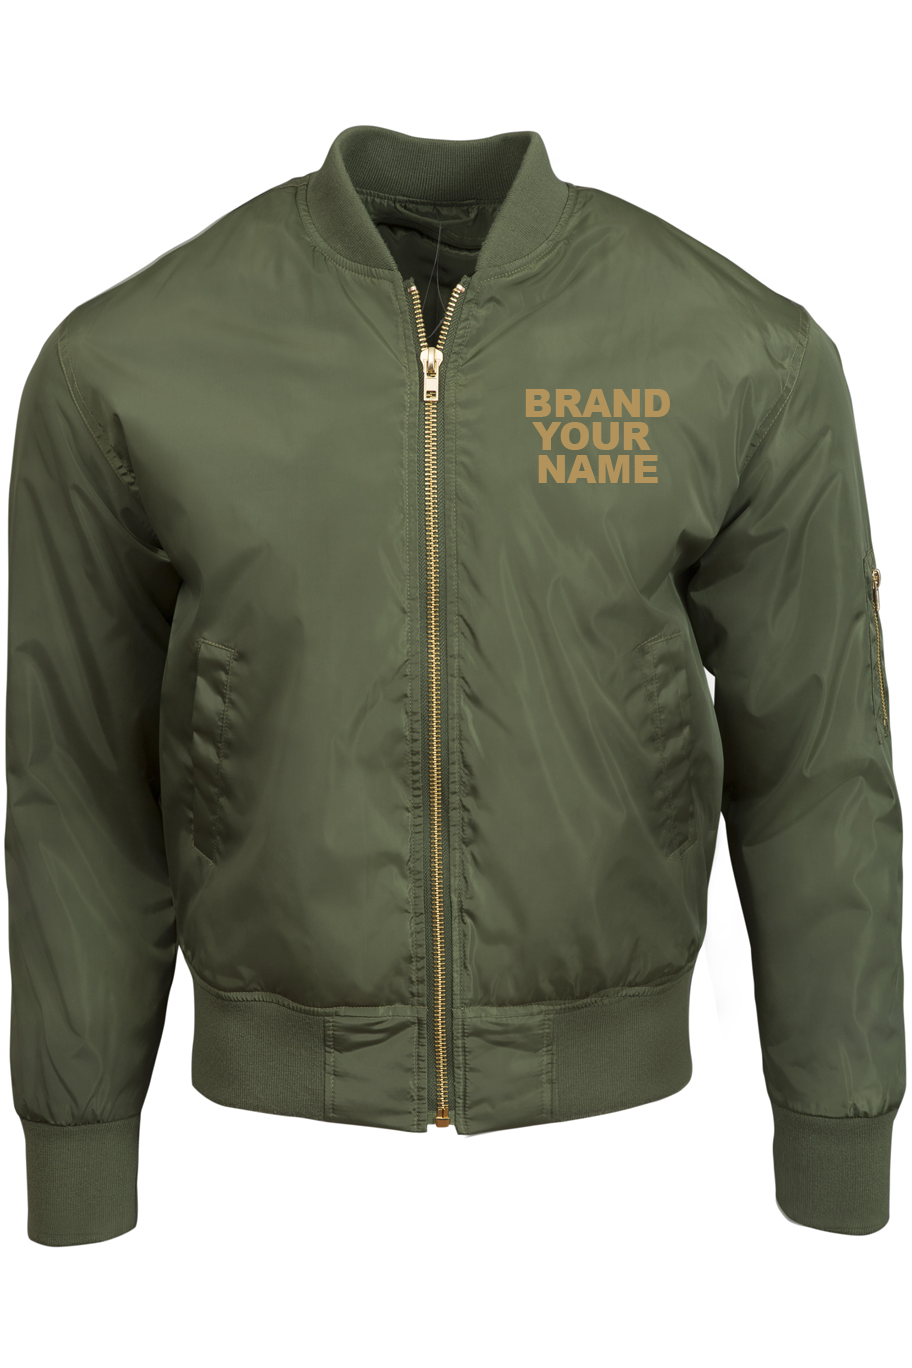 10 Bomber Jacket Package (Year Round)